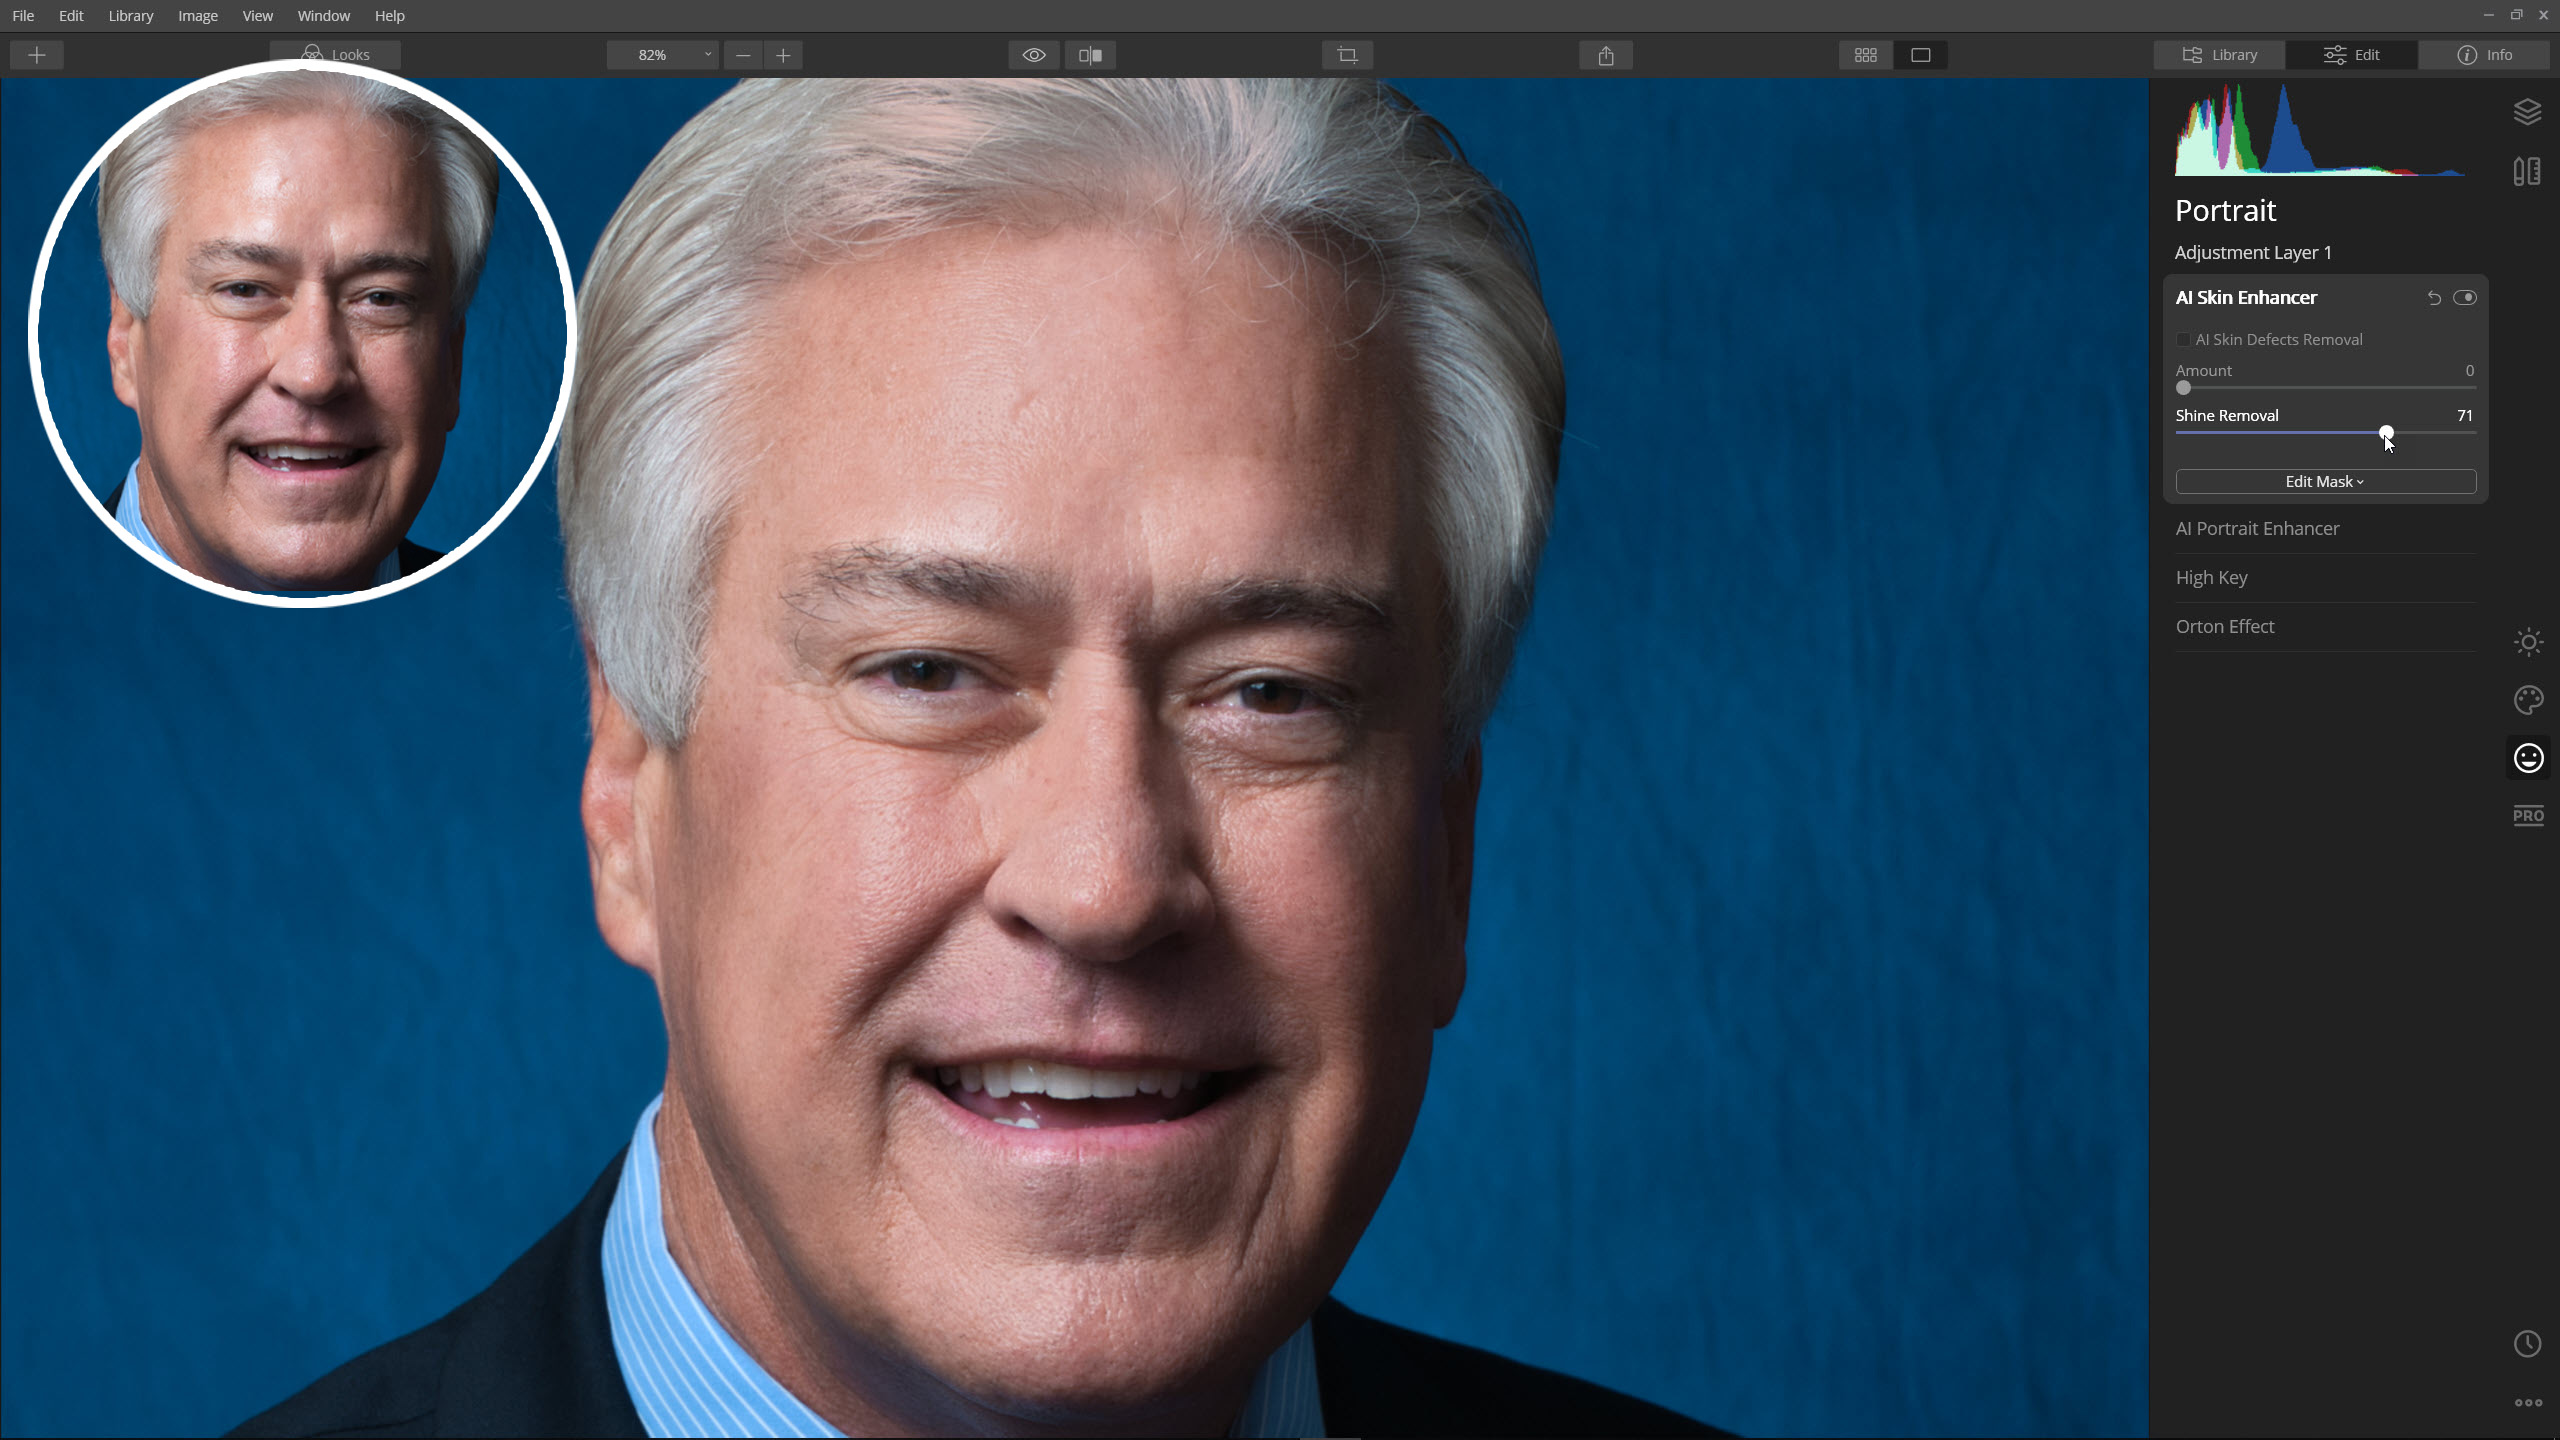 What causes shine on a portrait and how to fix it